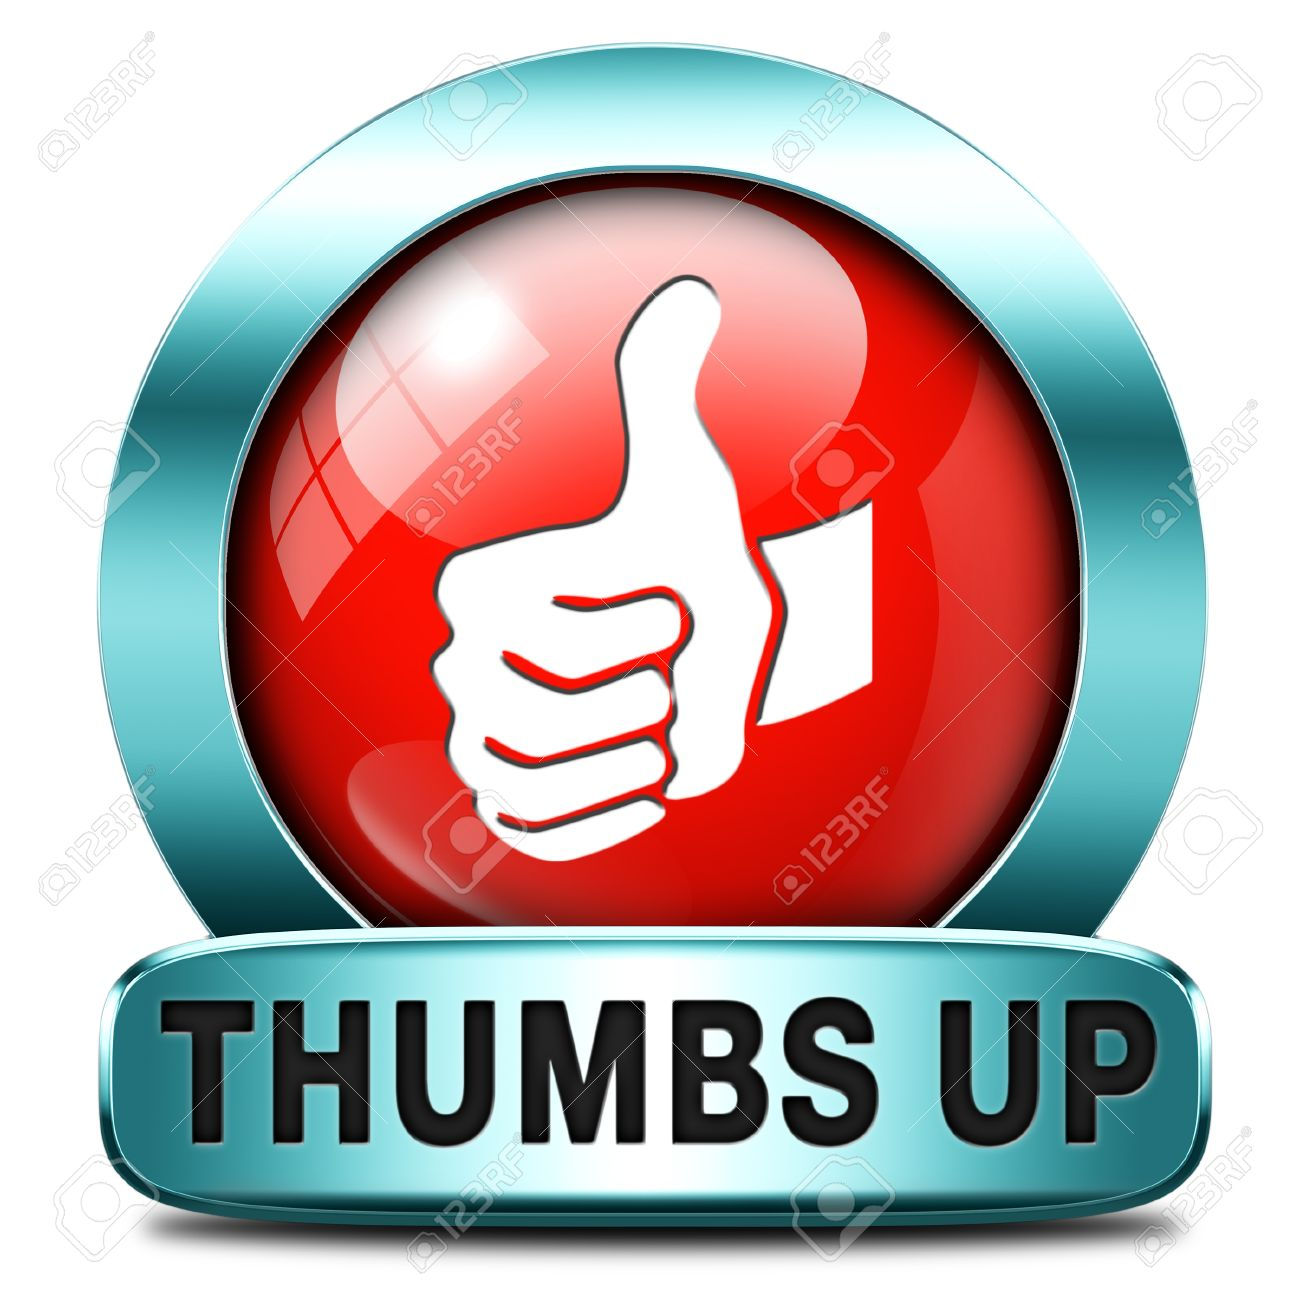 thumbs up good and excellent work job well done and task finished